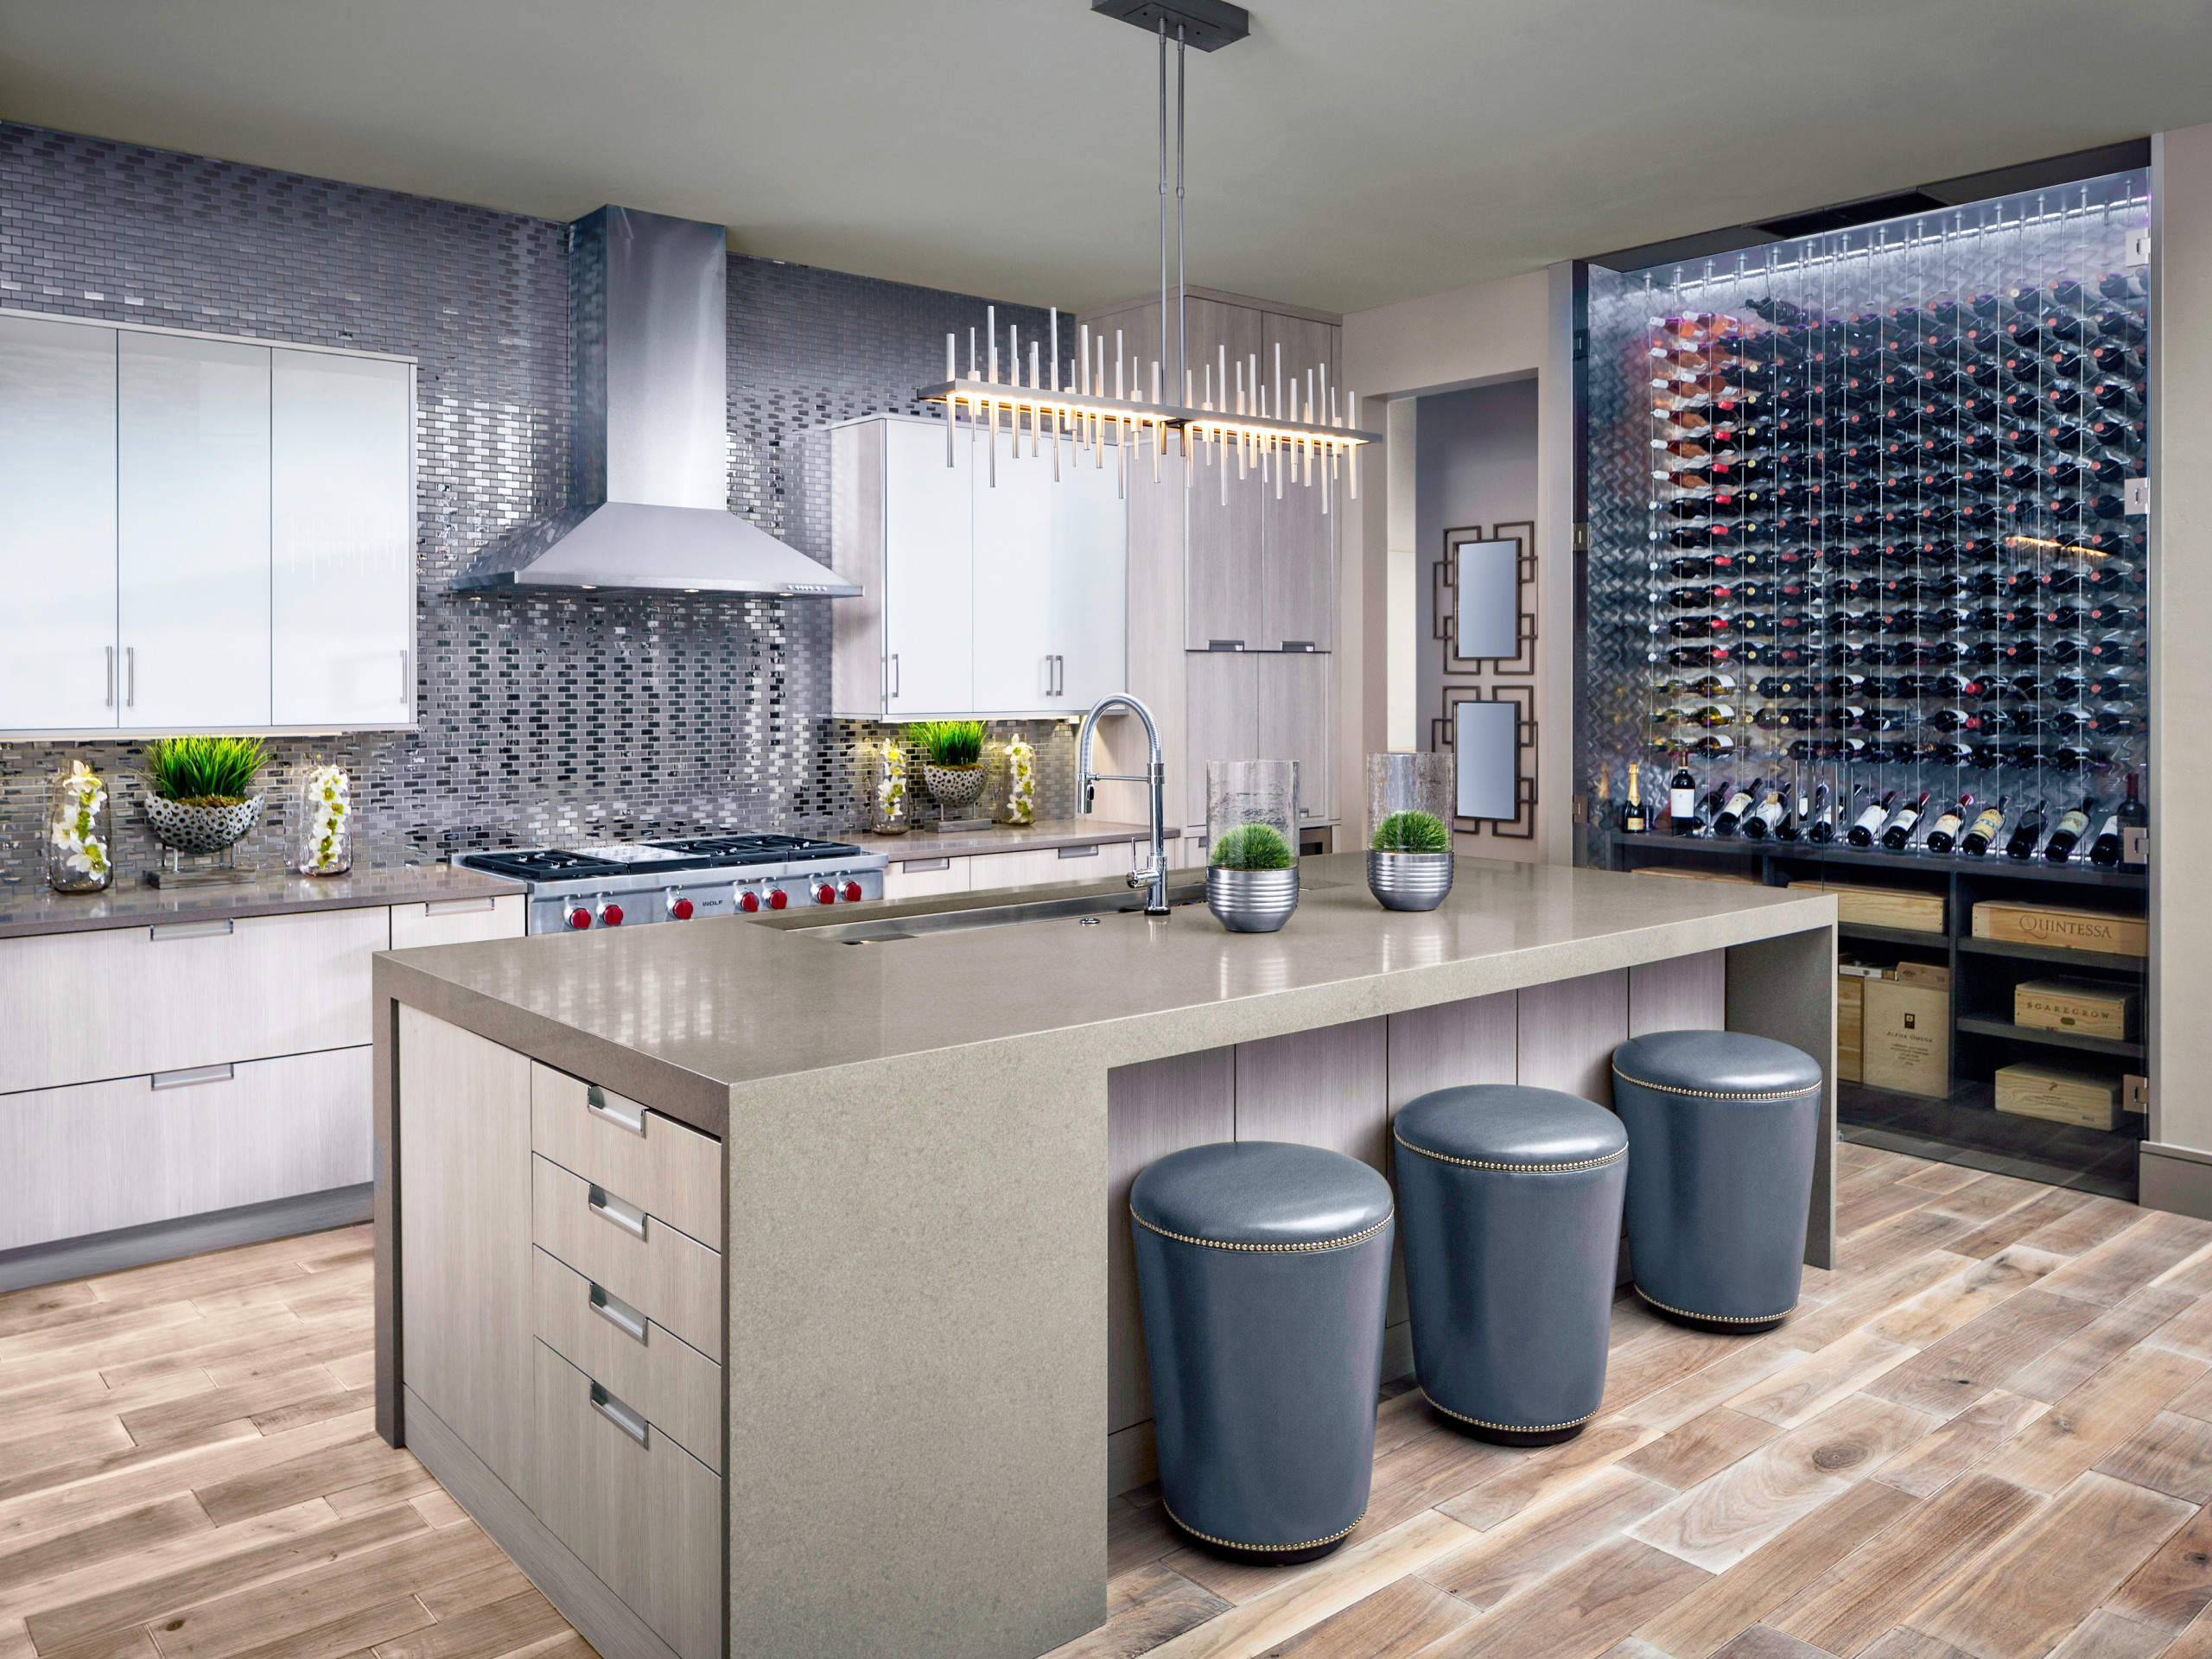 75 Beautiful Kitchen With Light Wood Cabinets Pictures Ideas January 2021 Houzz